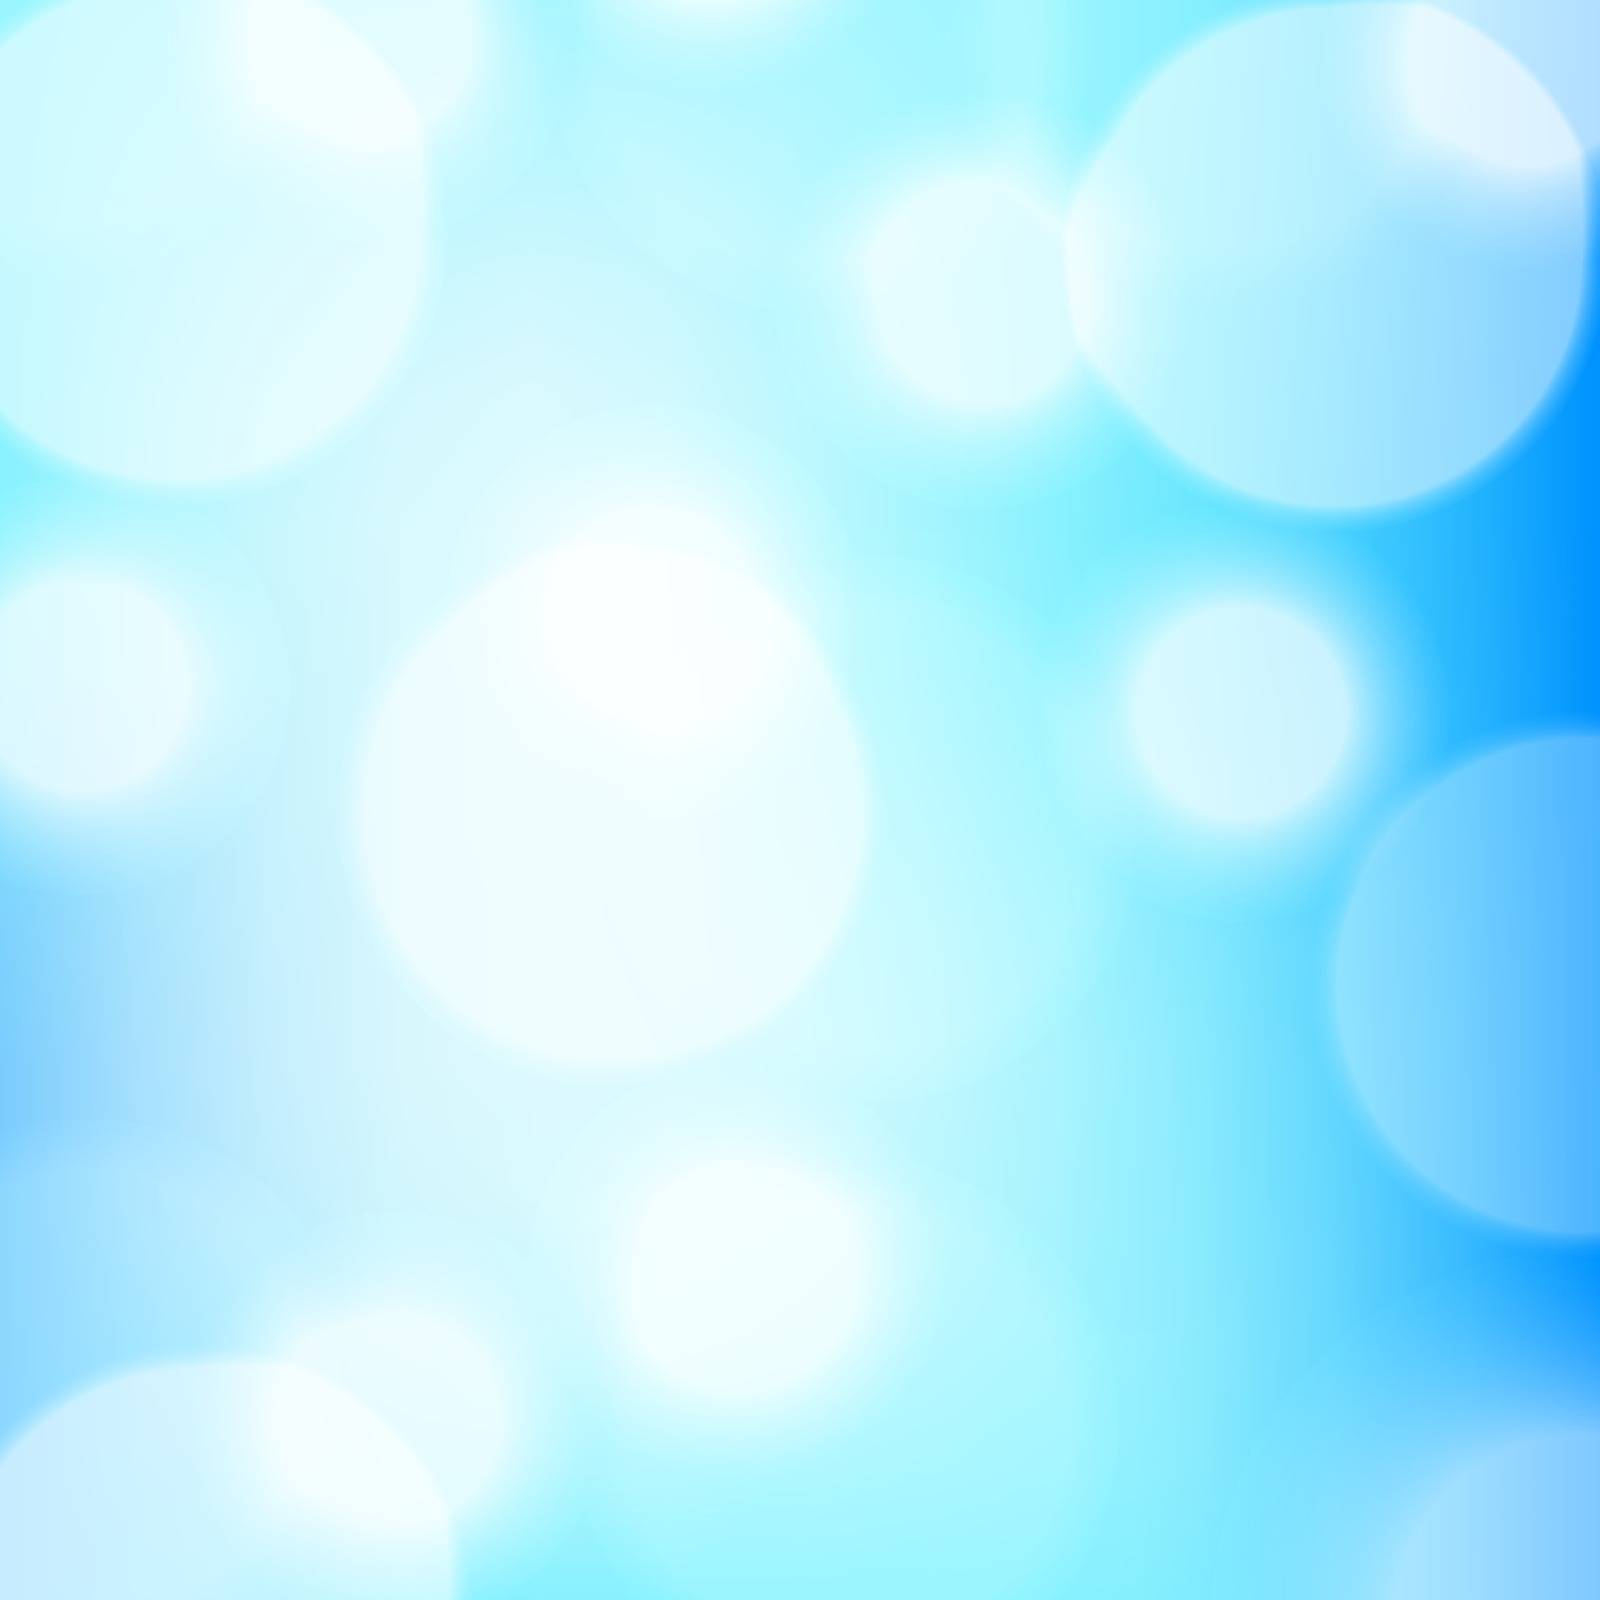 Abstract colorful defocused lights bokeh background. Vector illustration.